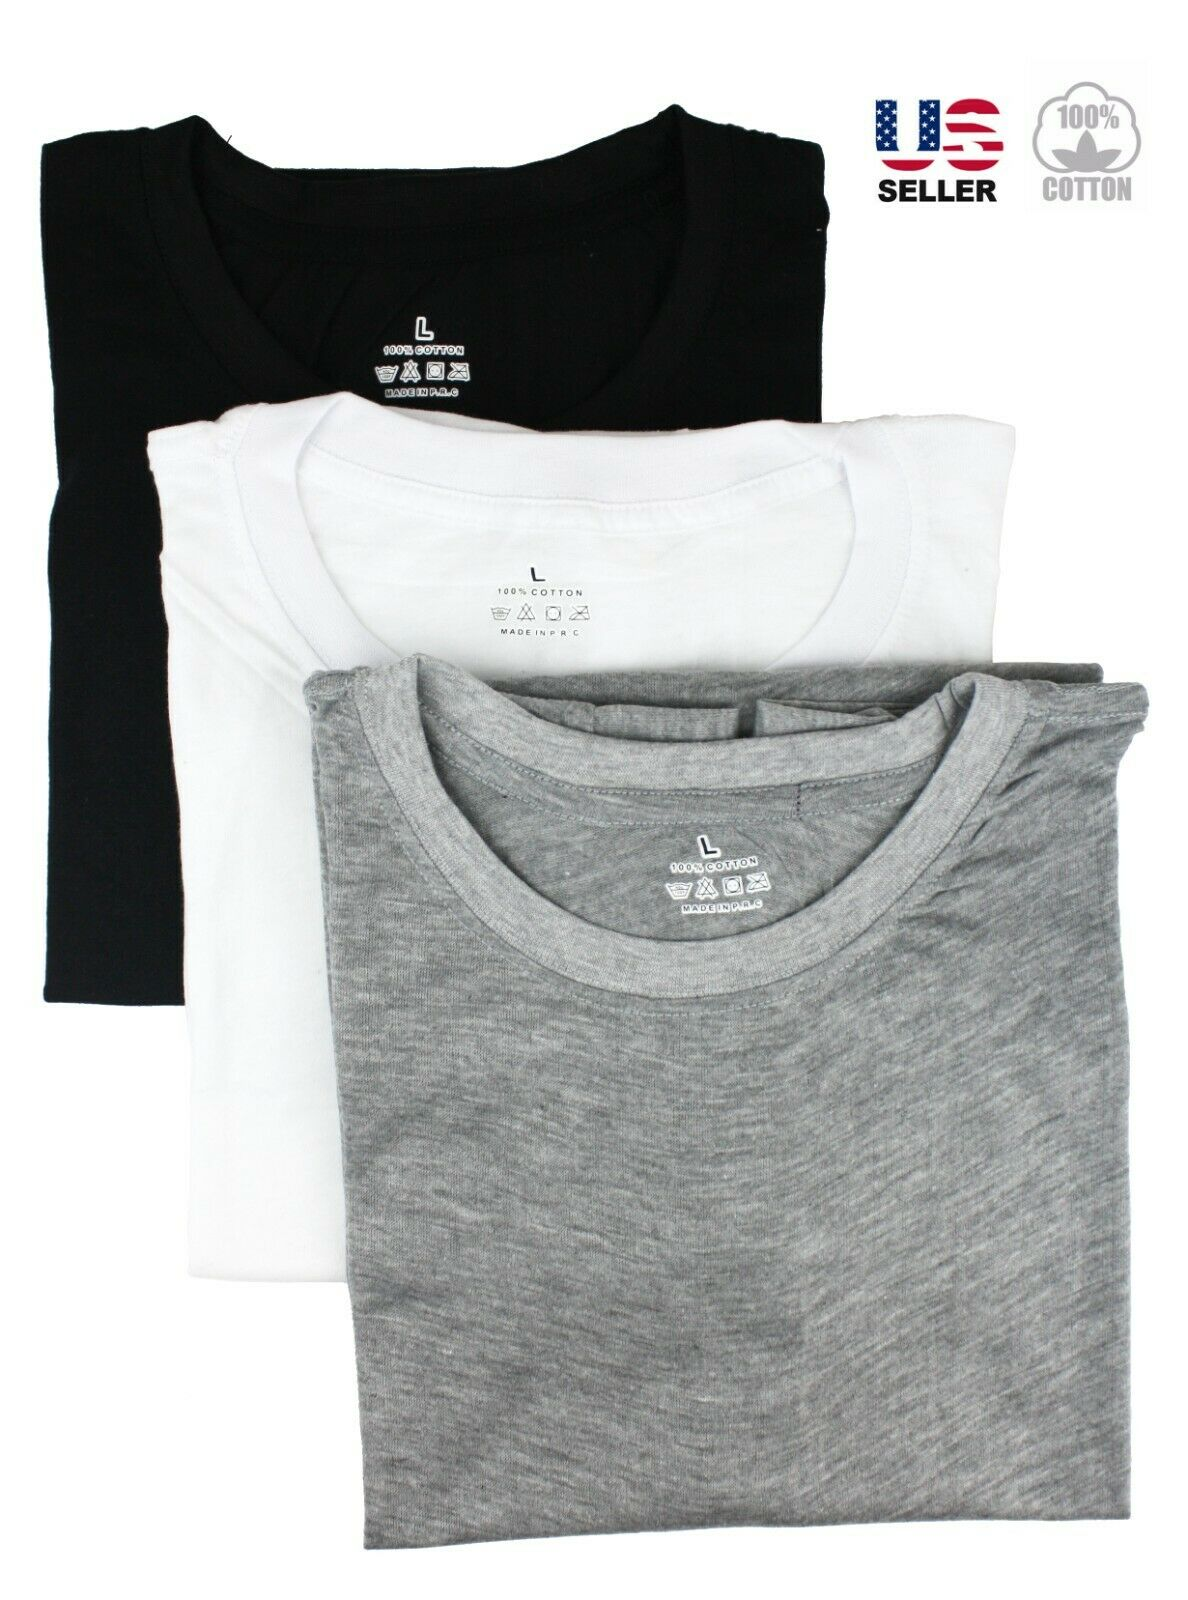 Lot 3 Pack Men's 100% Cotton Crew Neck Tagless T-Shirt Undershirt Tee Casual Clothing, Shoes & Accessories